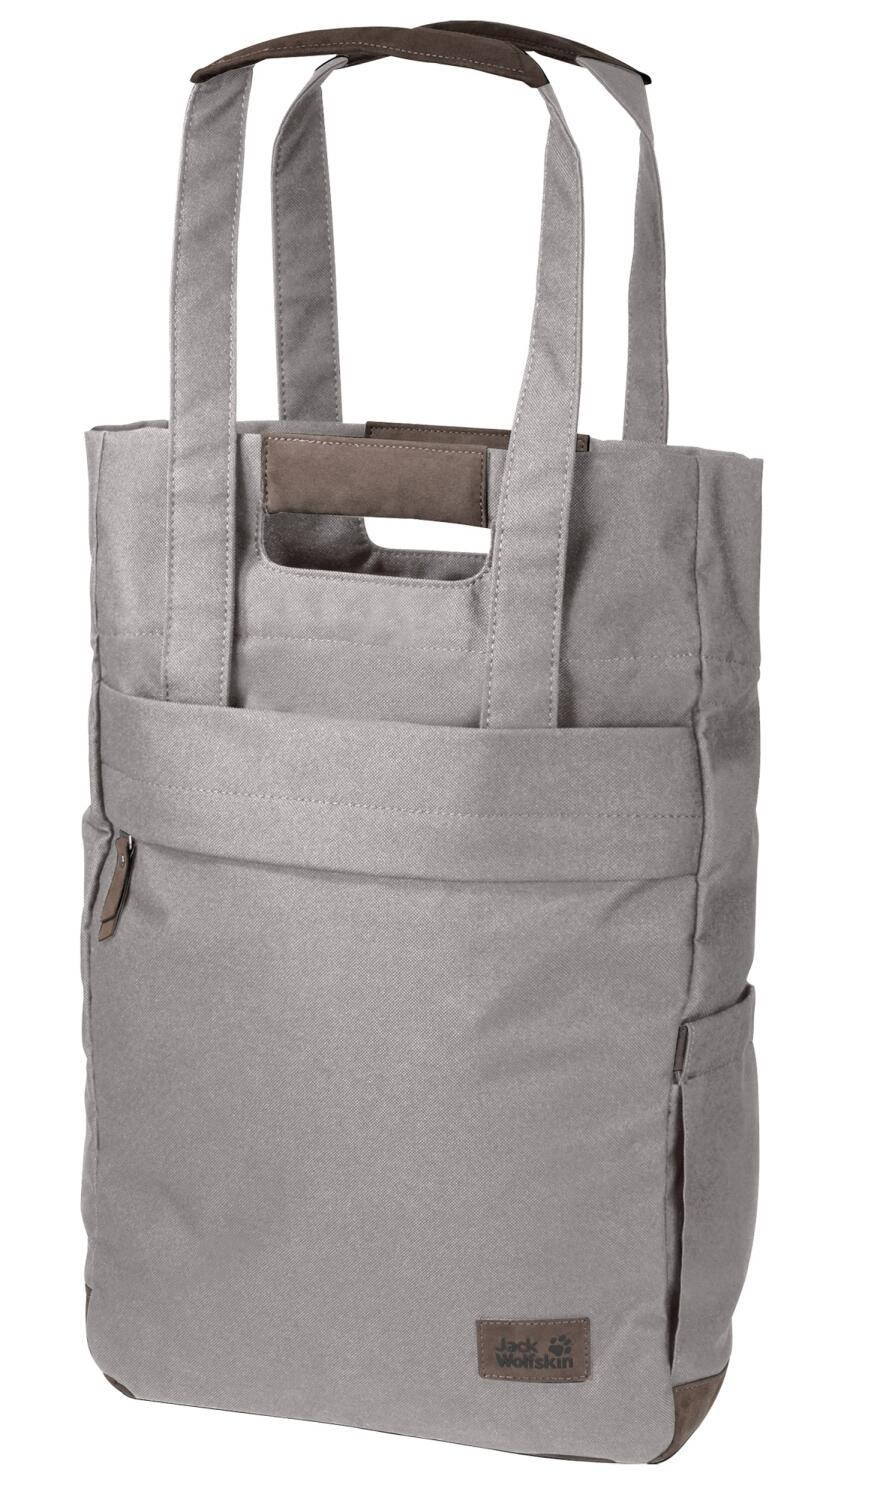 jack-wolfskin-piccadilly-umh-auml-ngetasche-farbe-6020-clay-grey-